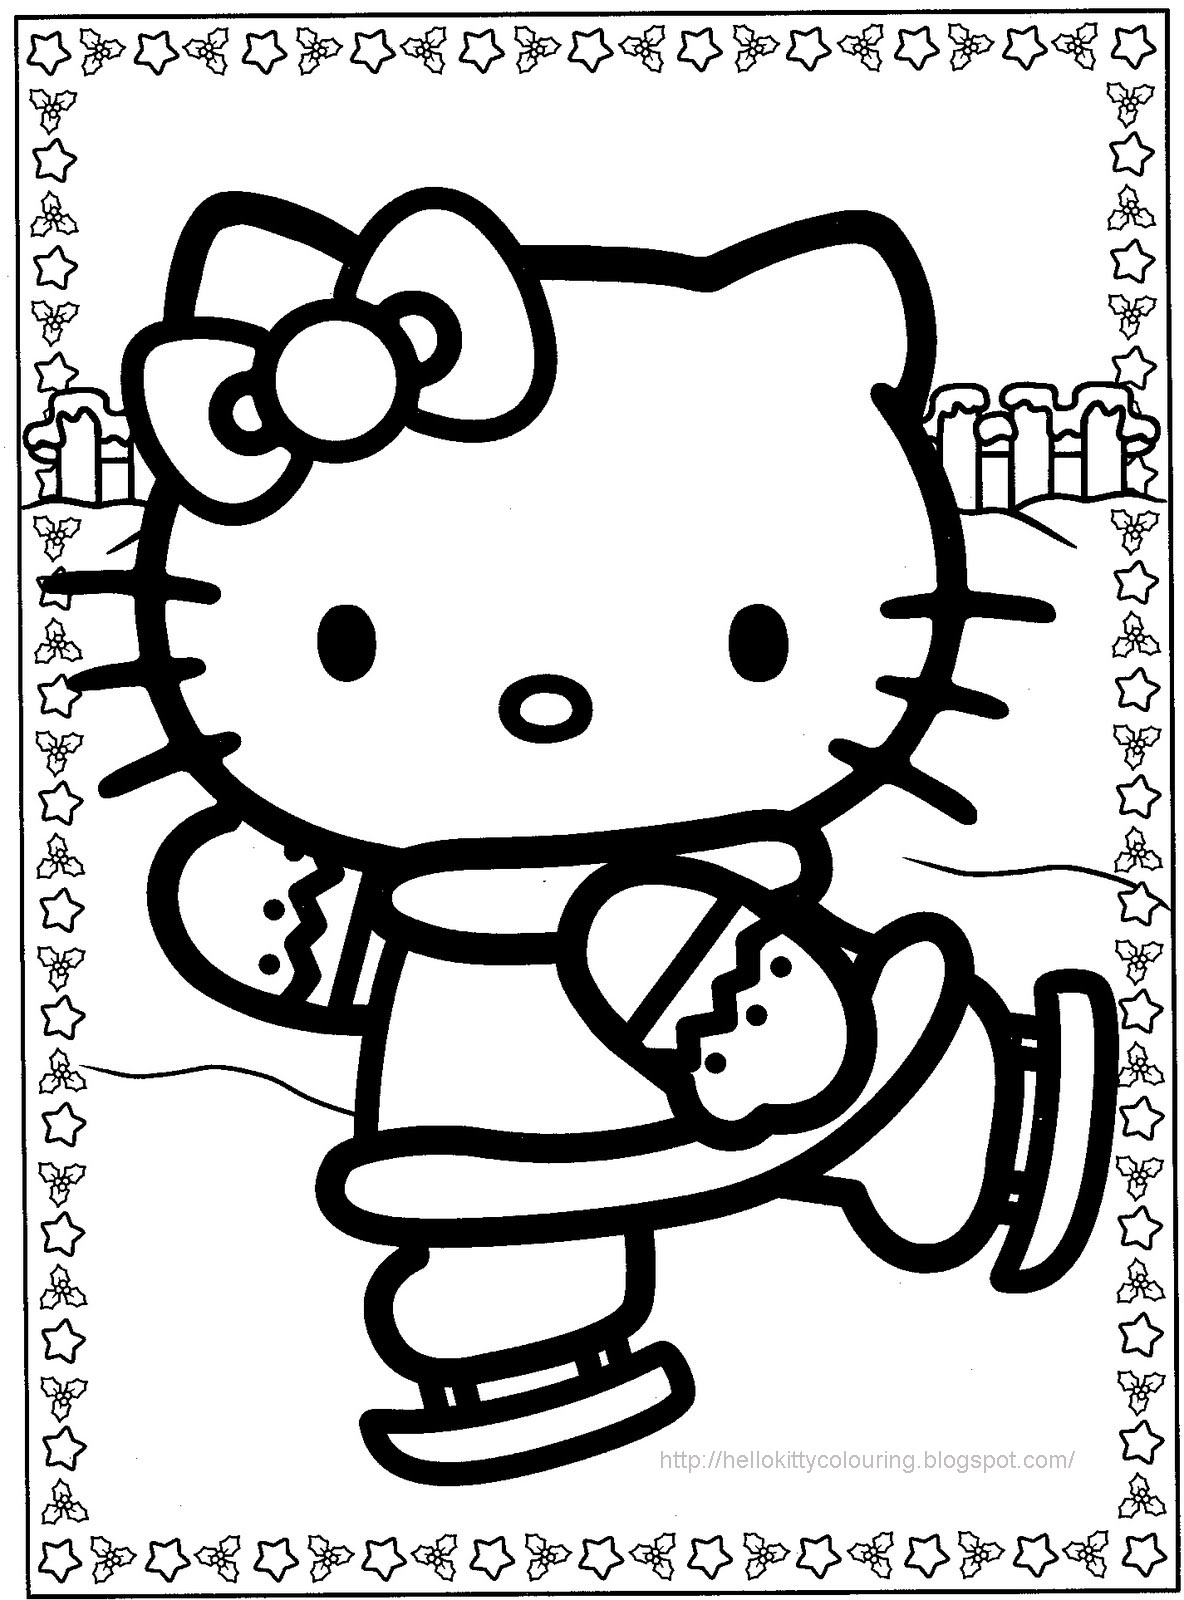 hello kitty coloring pages online and free | Hello Kitty Christmas Coloring Pages #1 | Hello Kitty Forever